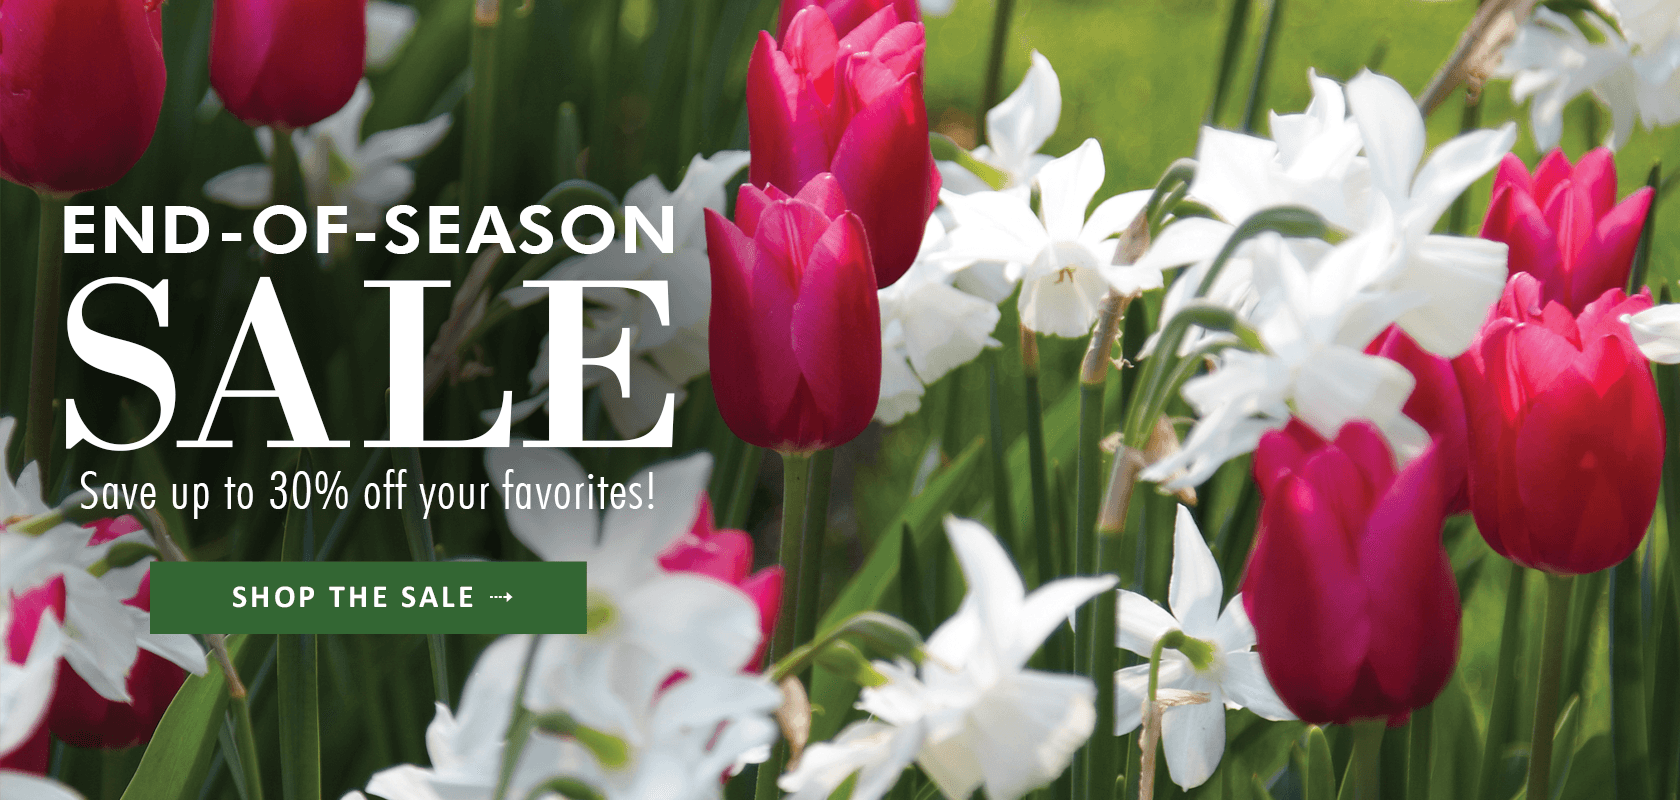 End Of Season Sale -- Save up to 30% off select items! Shop the sale